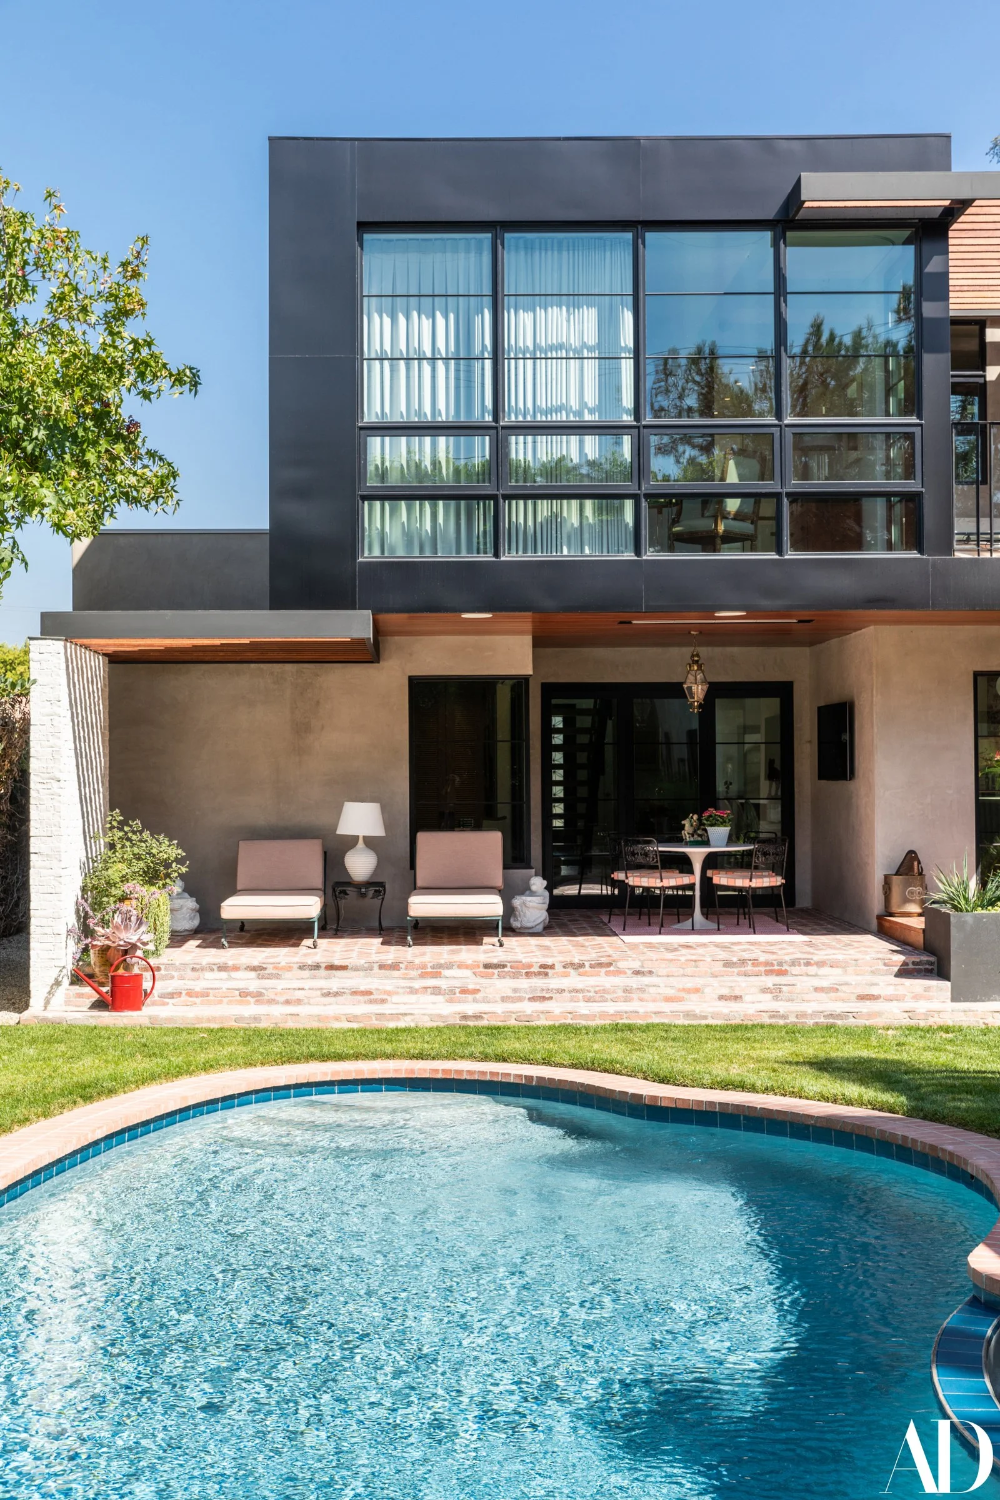 Judy Greer S Los Angeles Home Is Perfectly Playful And Practical In 2020 Los Angeles Homes Los Angeles Architecture Home